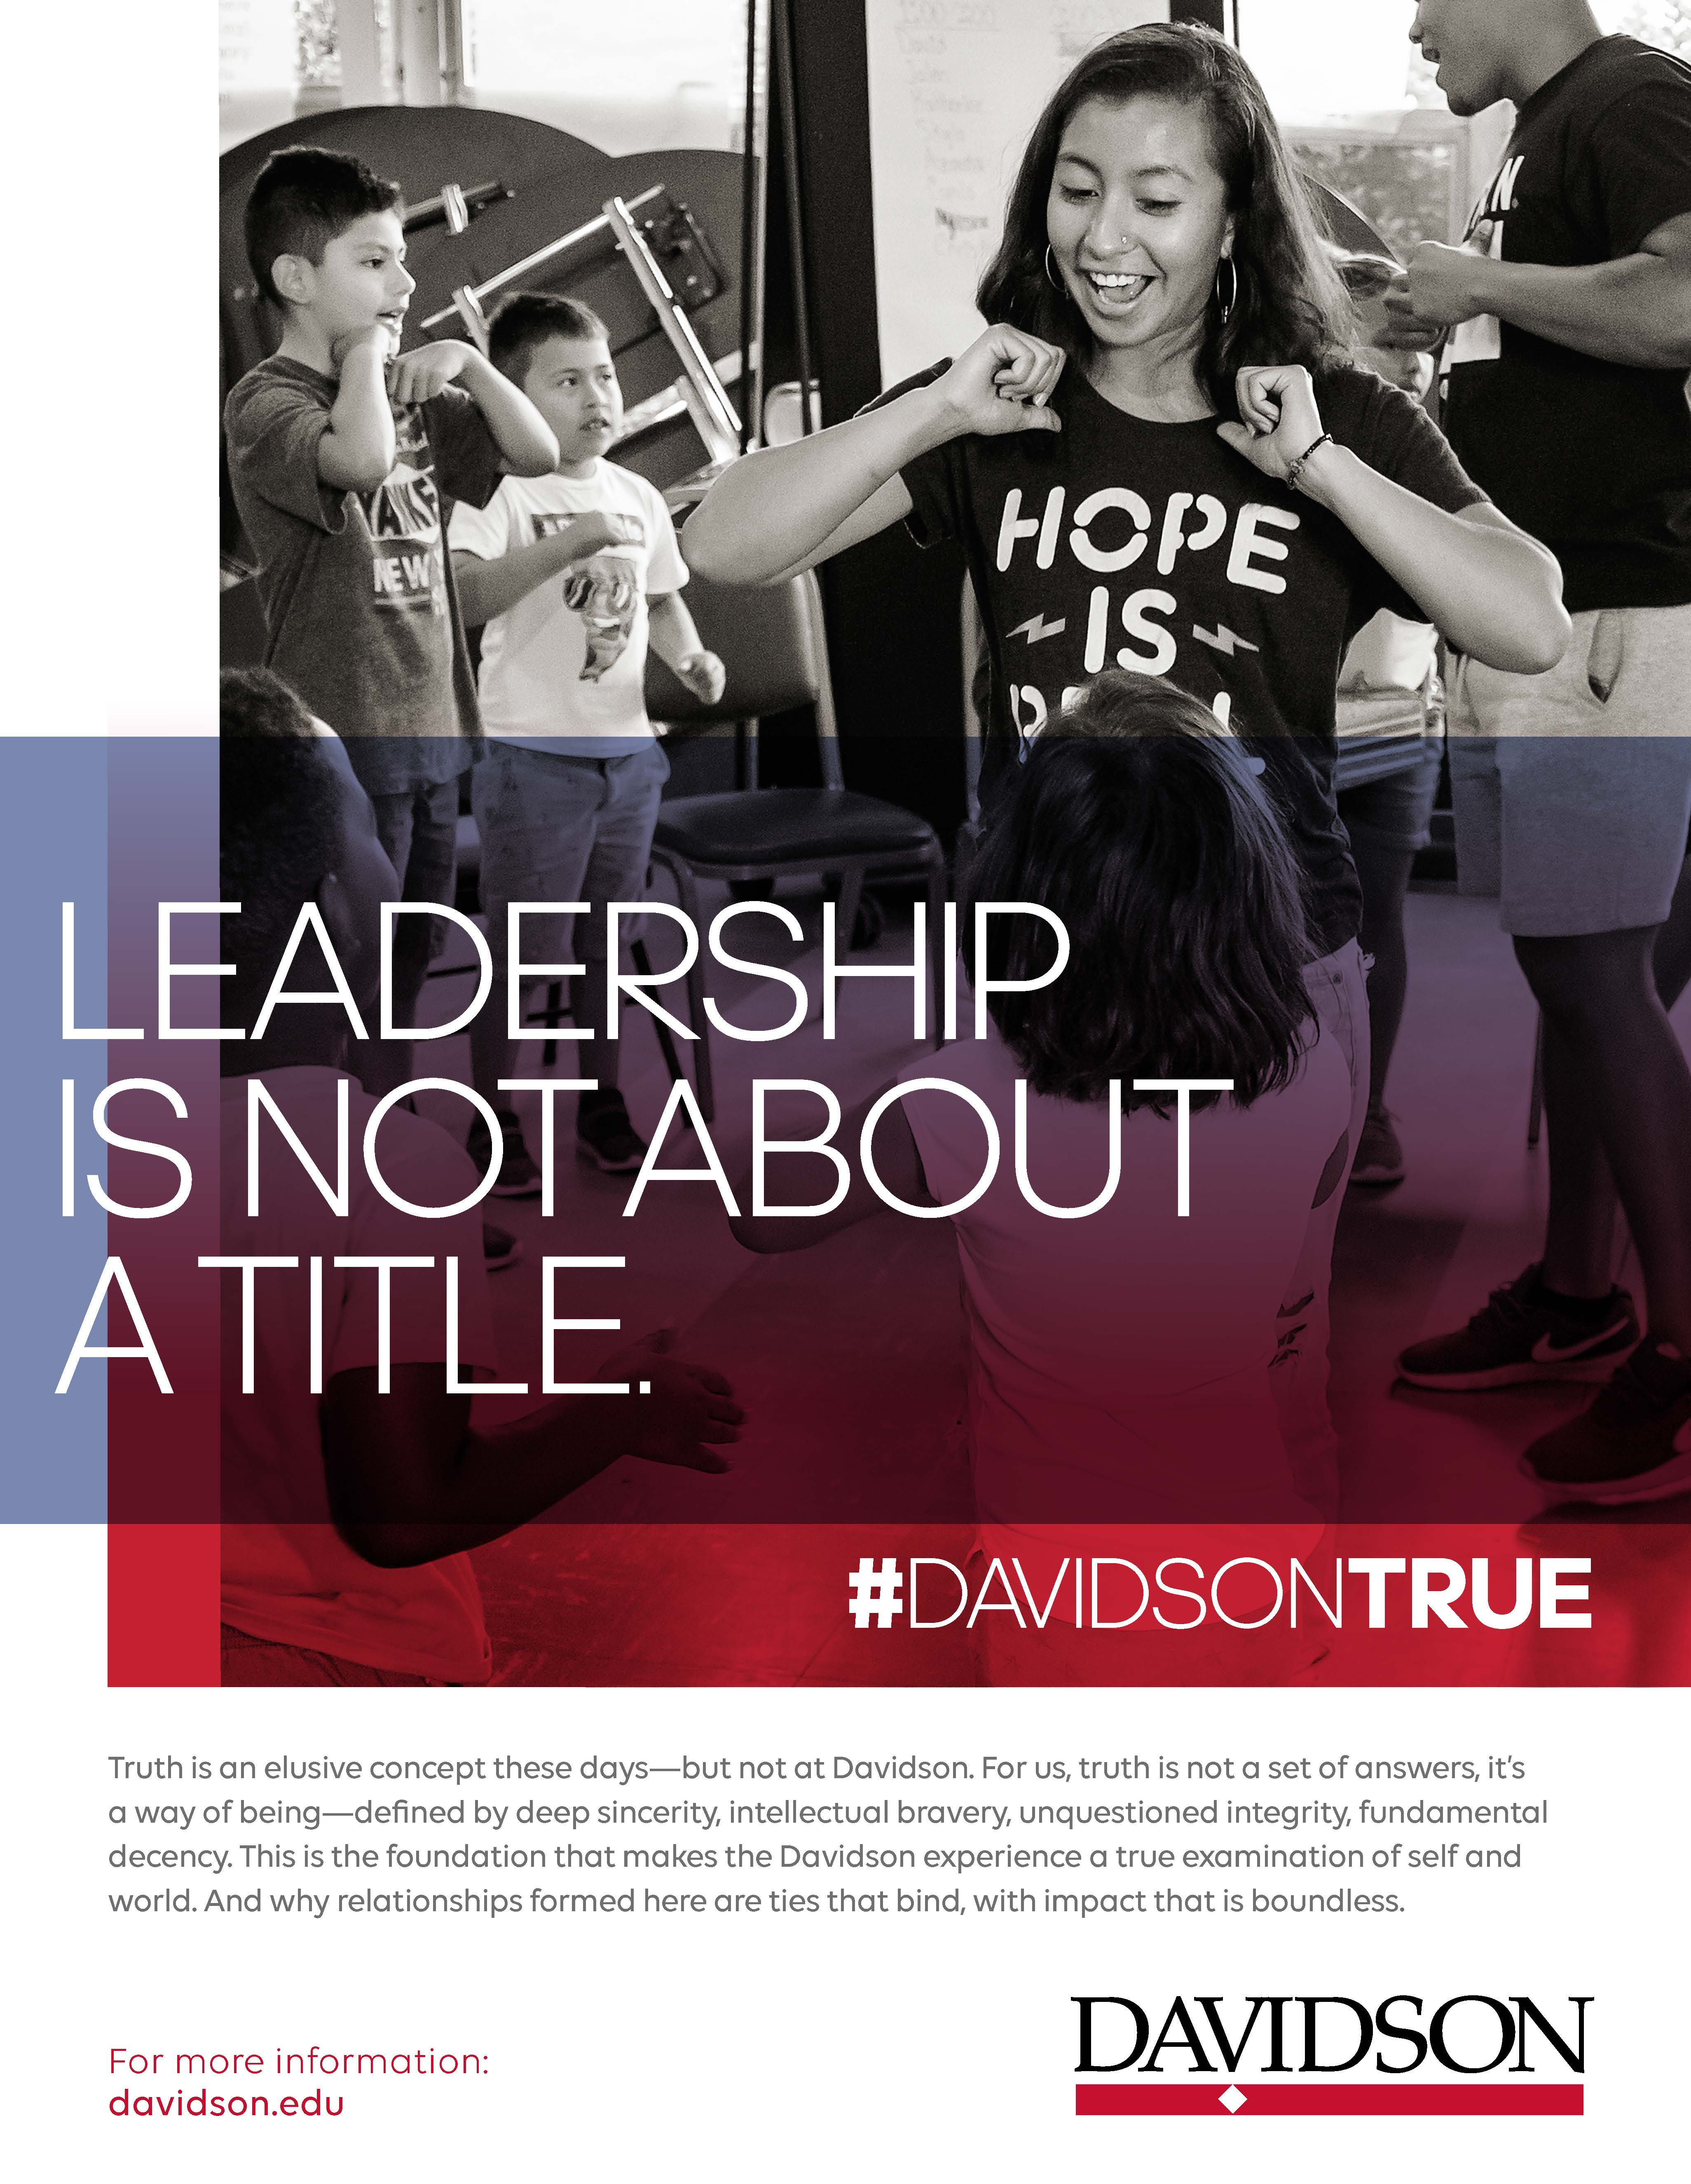 """Student Dancing with Overlaid """"Leadership is not about a title."""""""